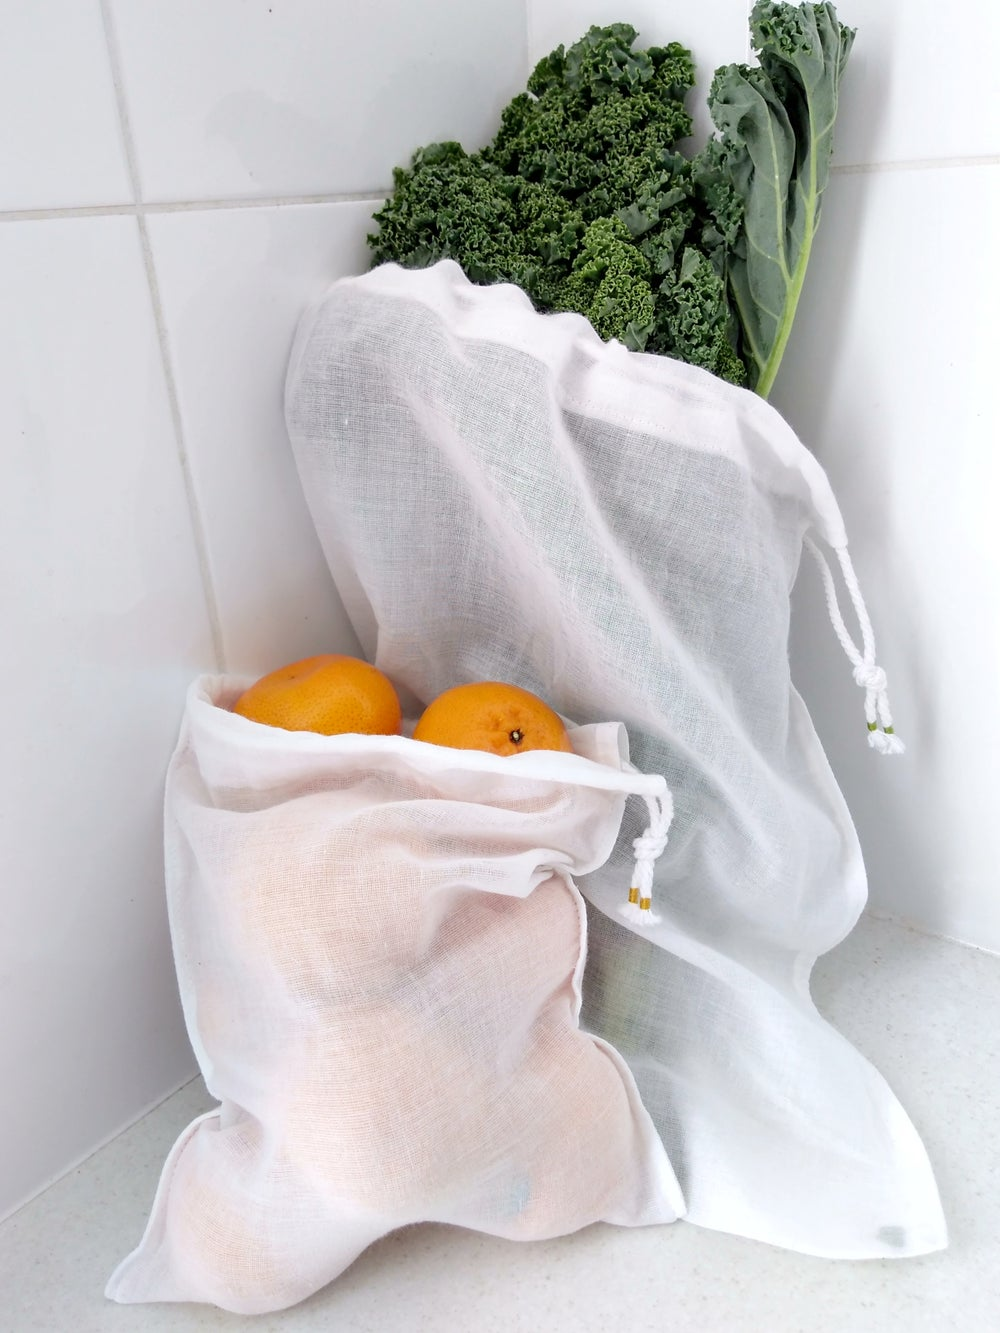 Image of Reusable produce bags, set of 3